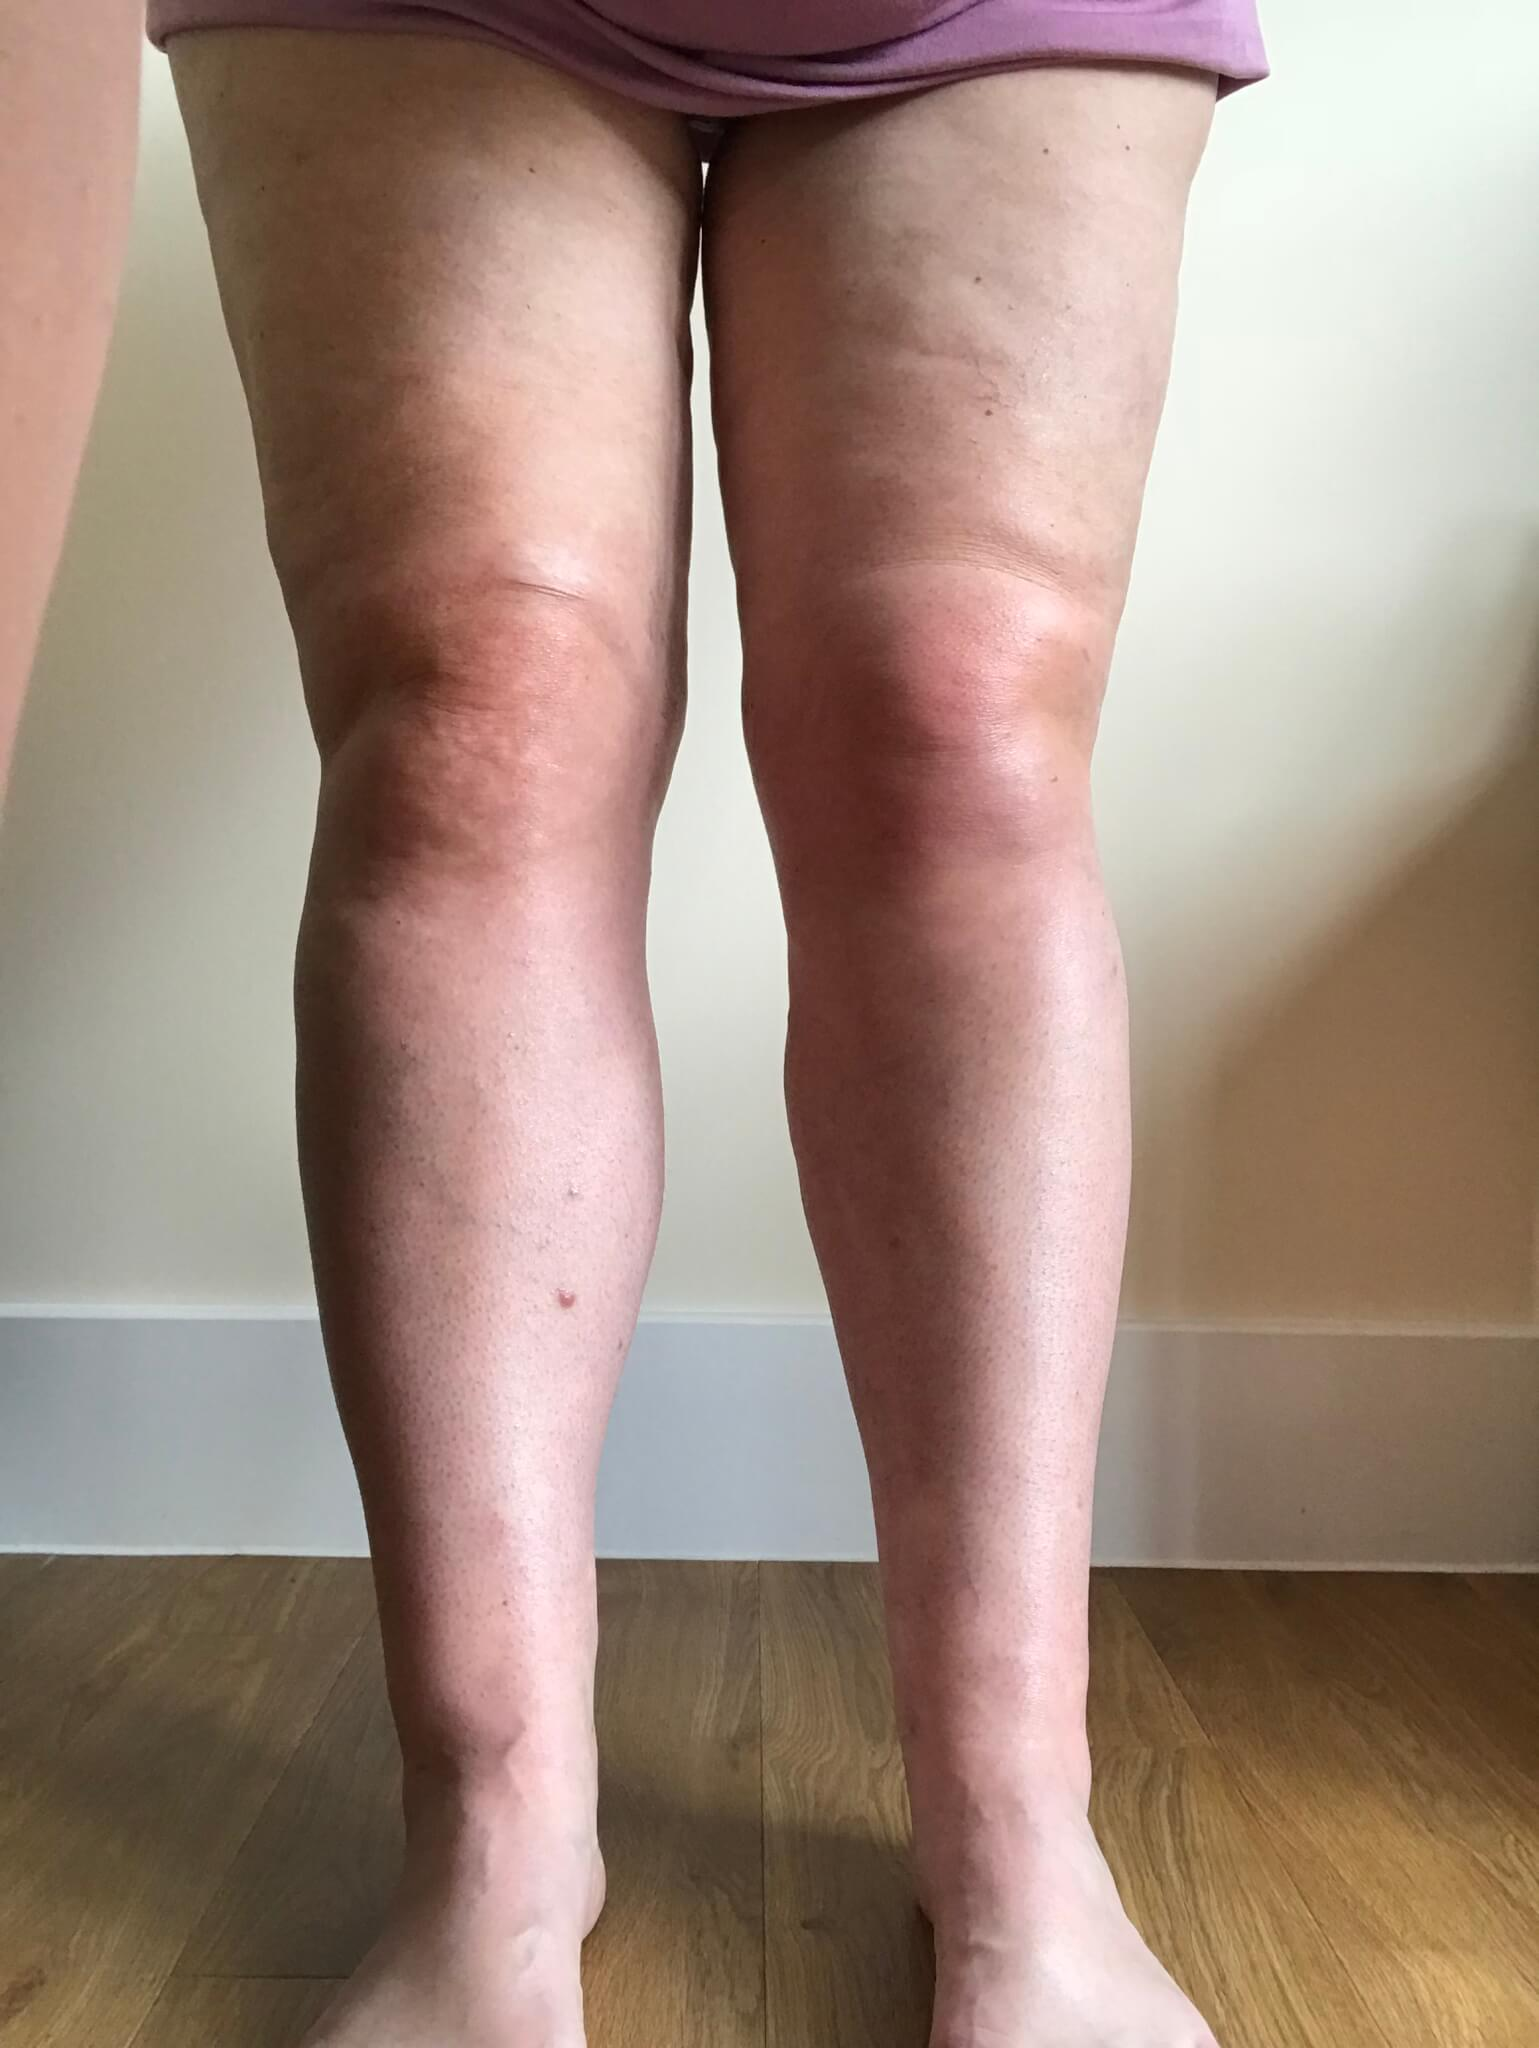 Beth's legs after surgery